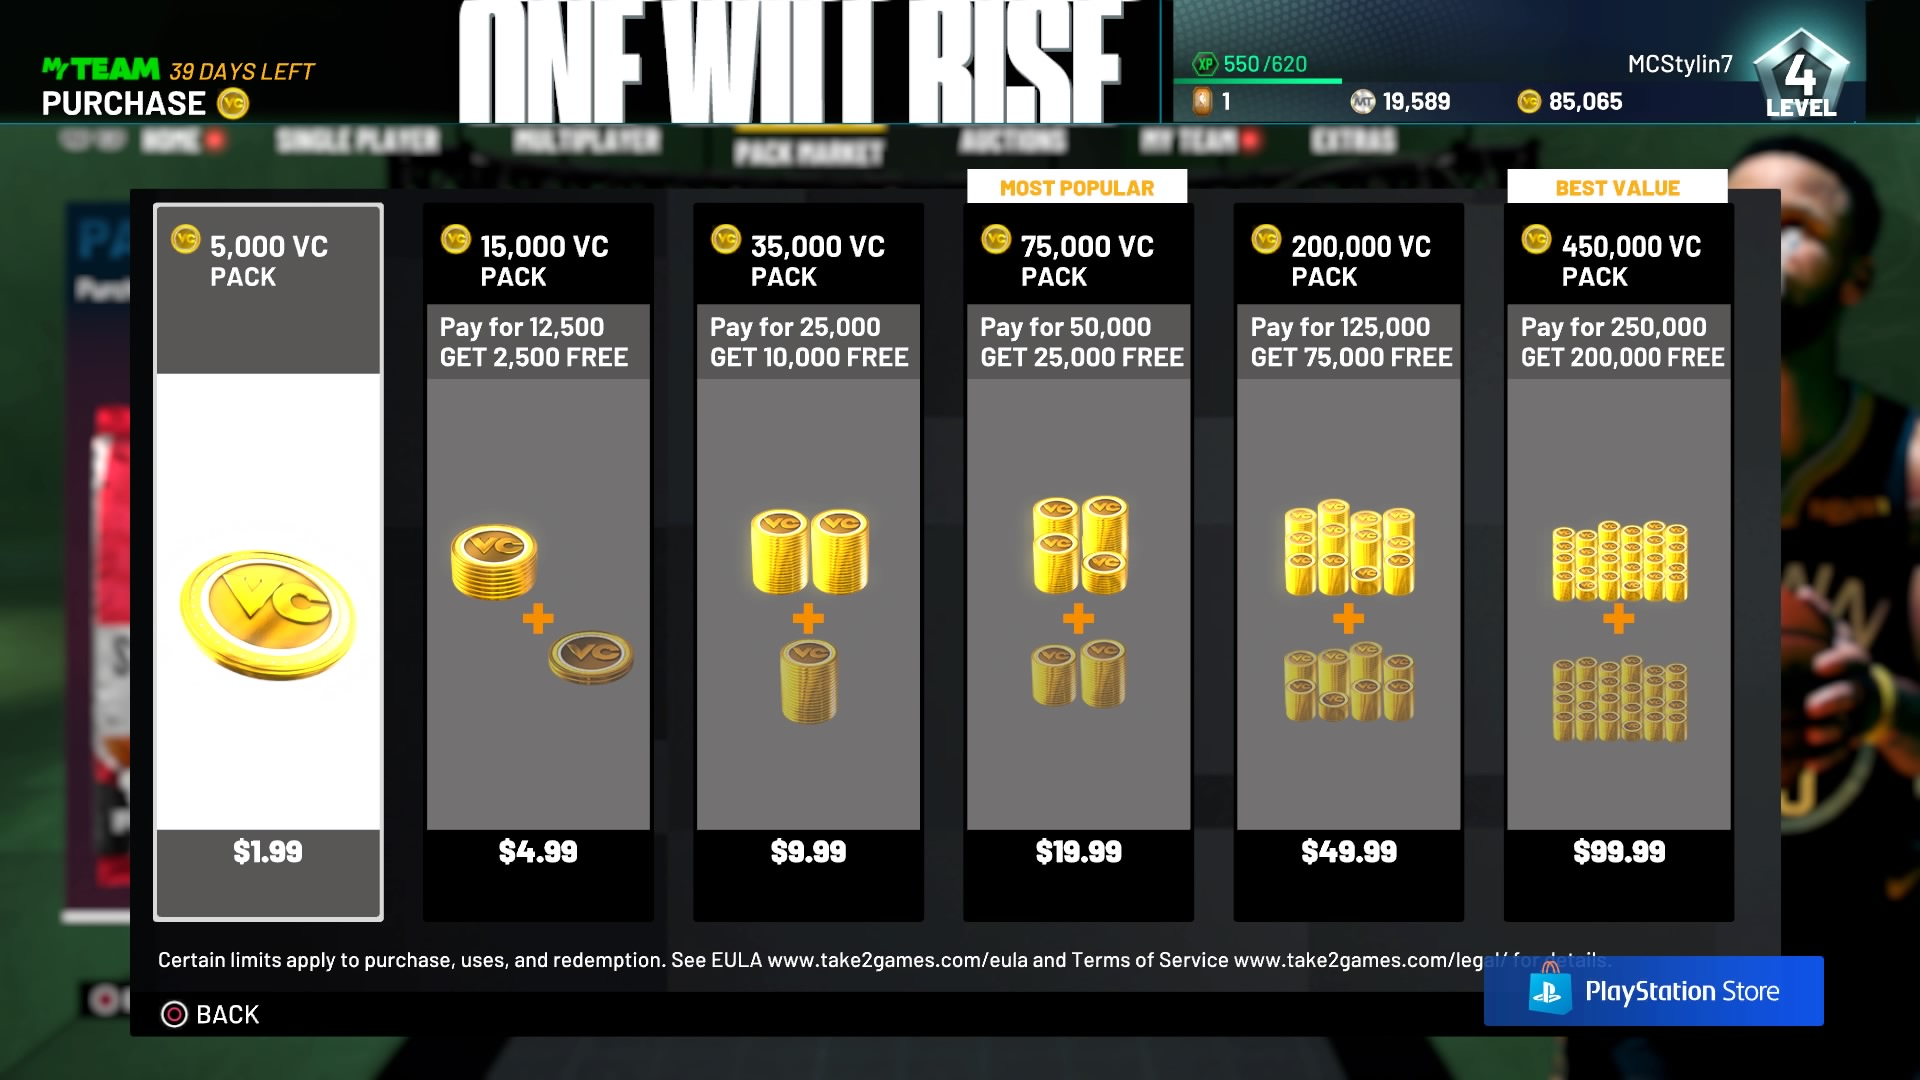 nba 2k21 virtual currency costs